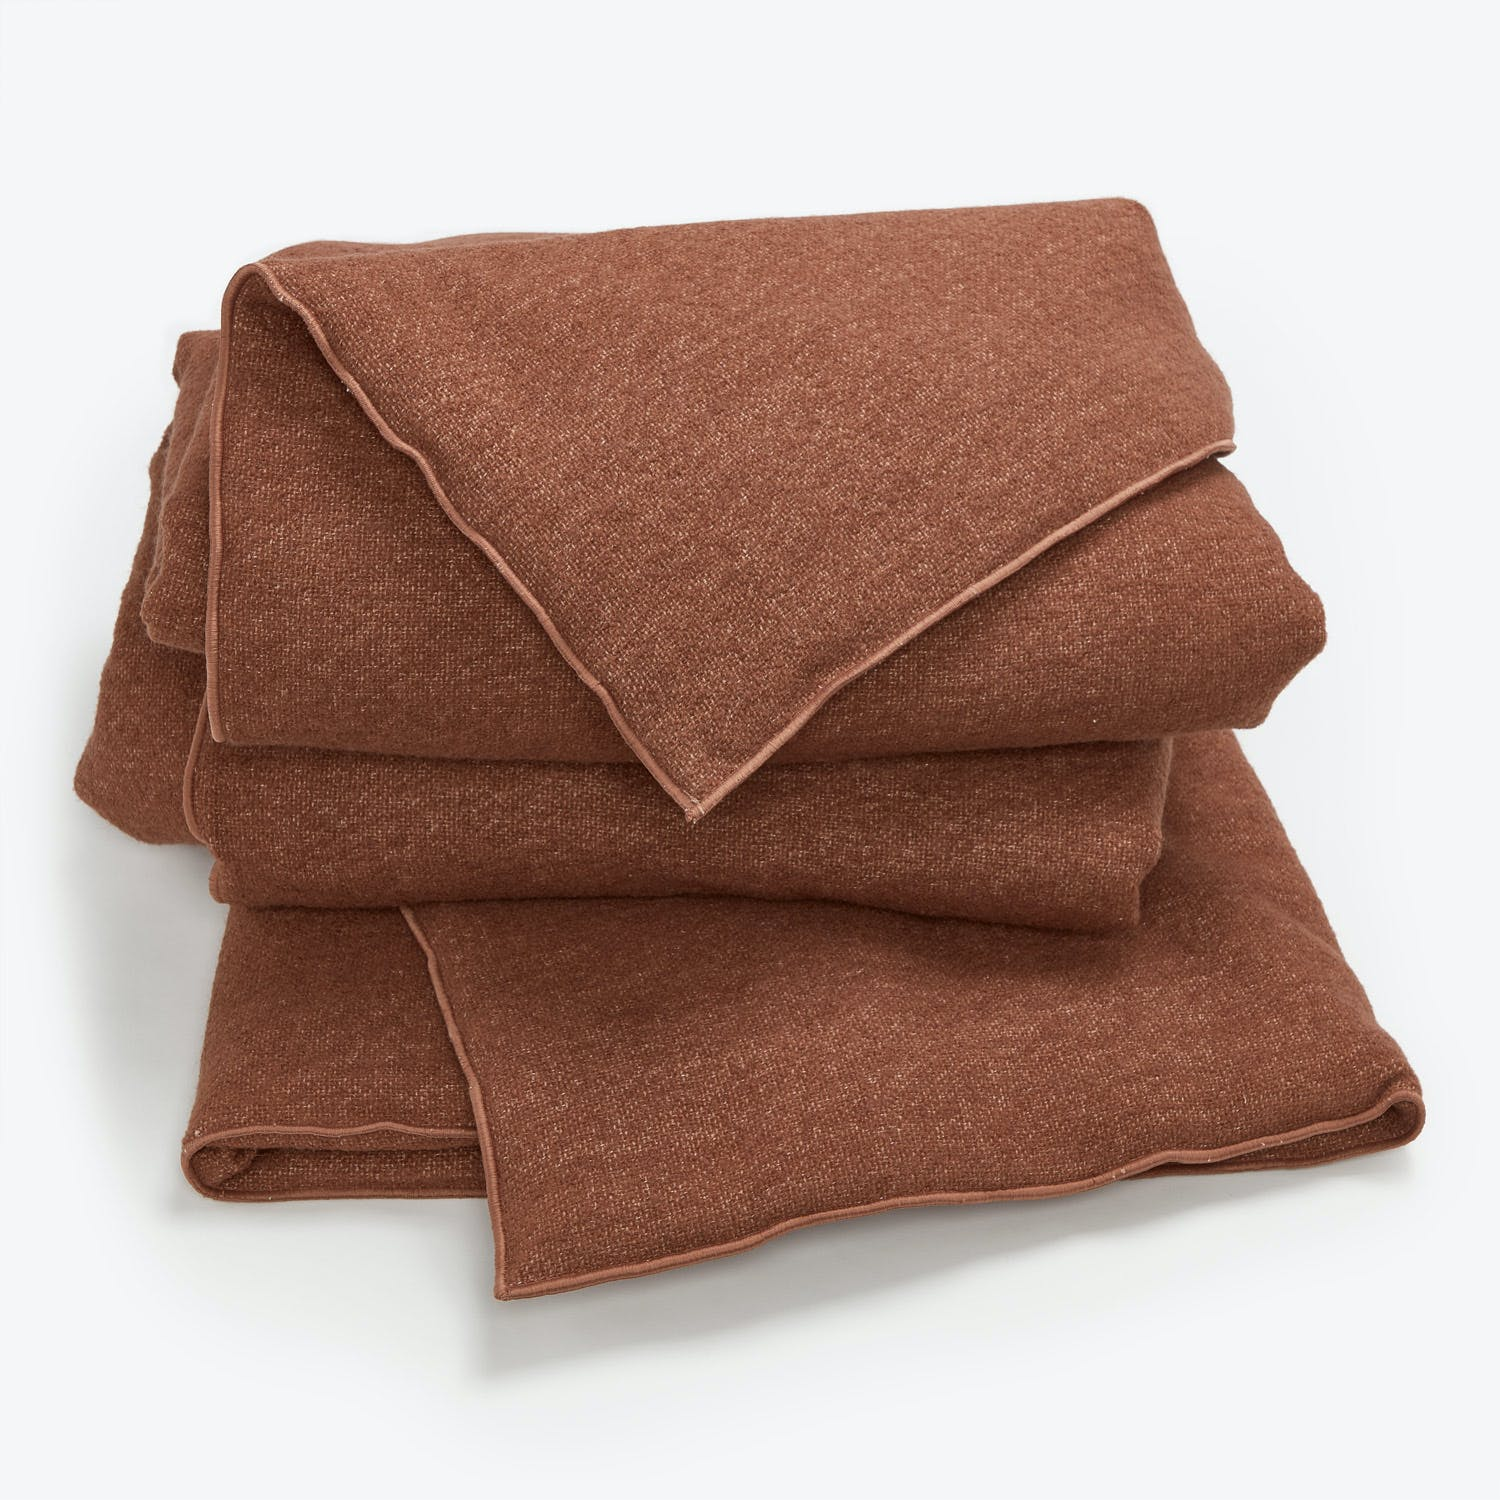 Maison De Vacances Canvas Bouclette Throw Blush